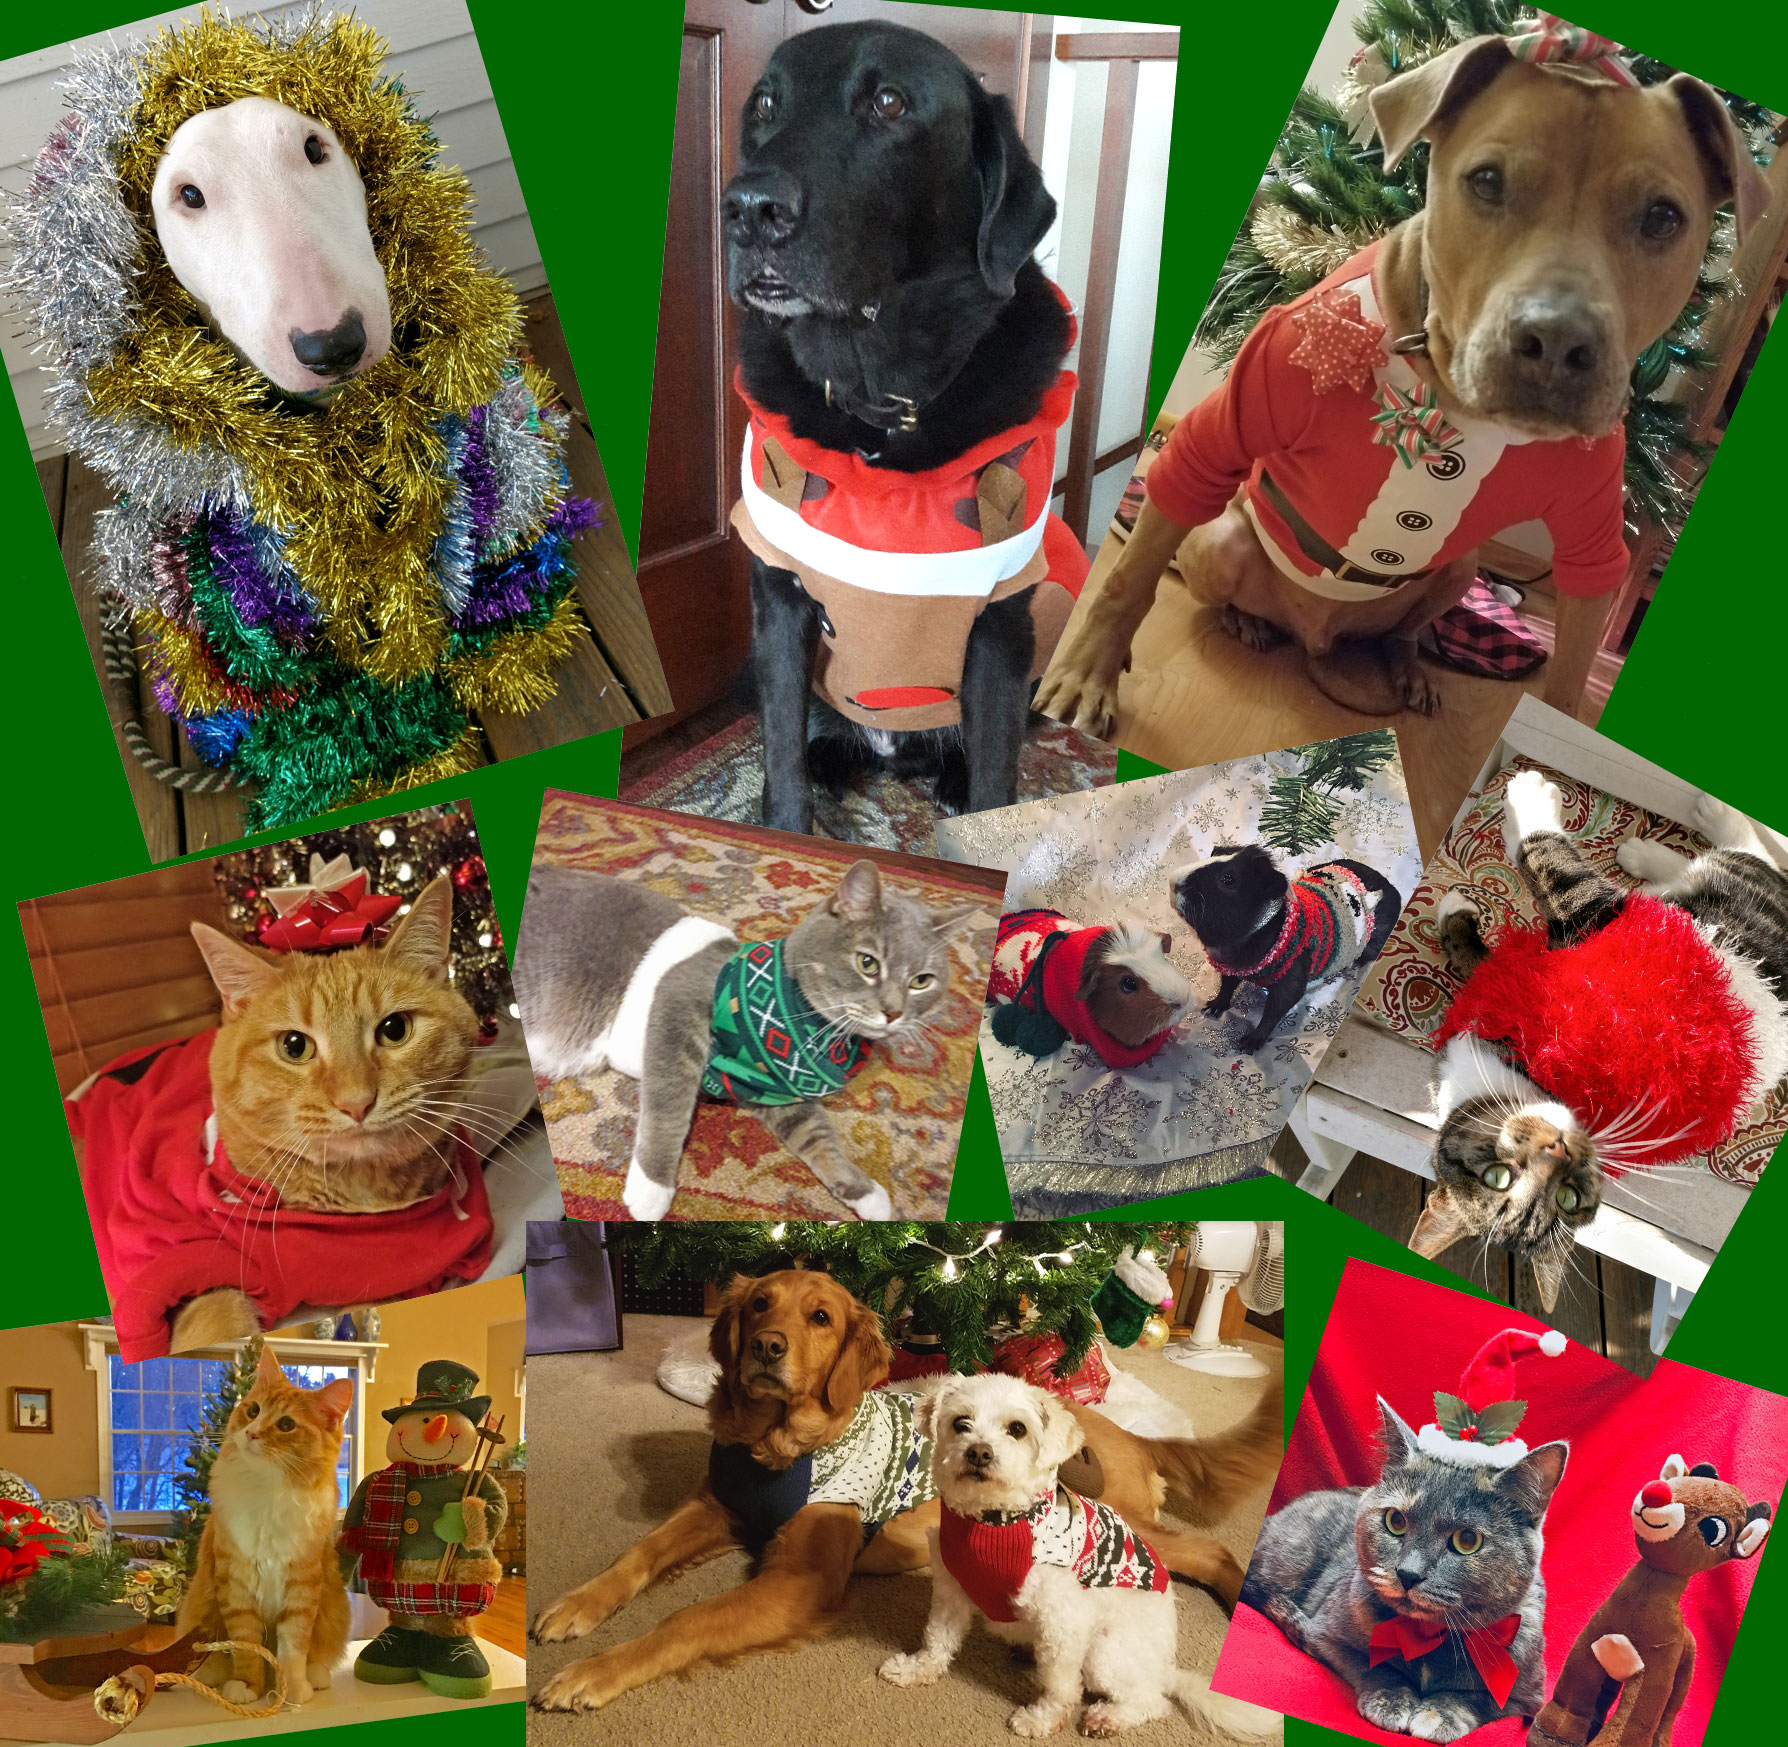 Christmas-collage-2-2018 2.jpg